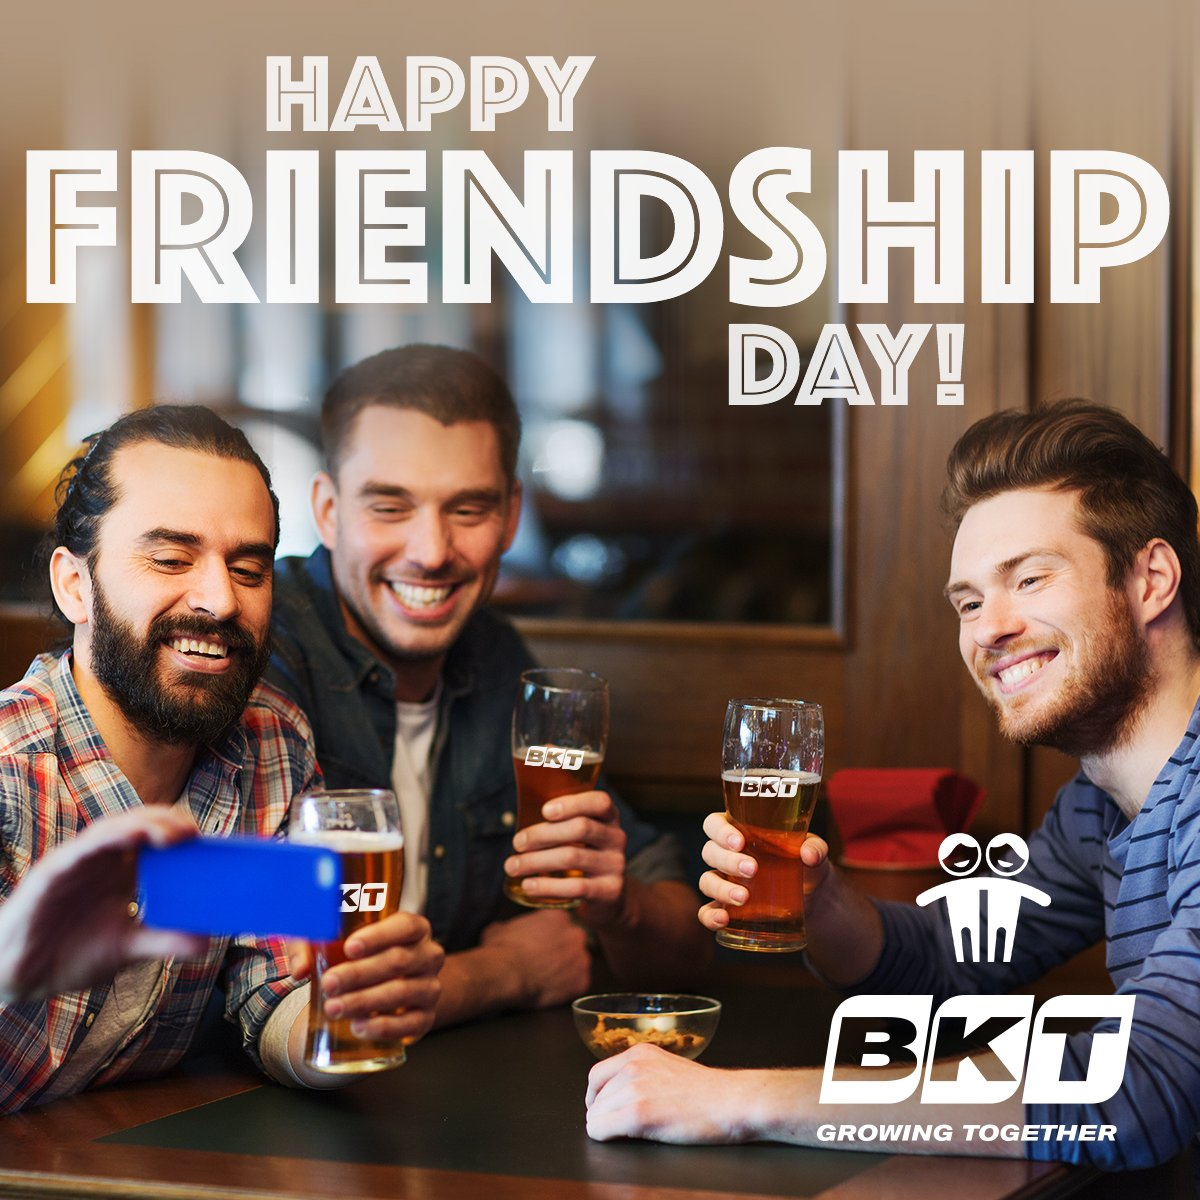 That's the perfect day to celebrate #friends you're #GrowingTogether with. Happy #FriendshipDay! #July30th https://t.co/Q5DZghFN3e